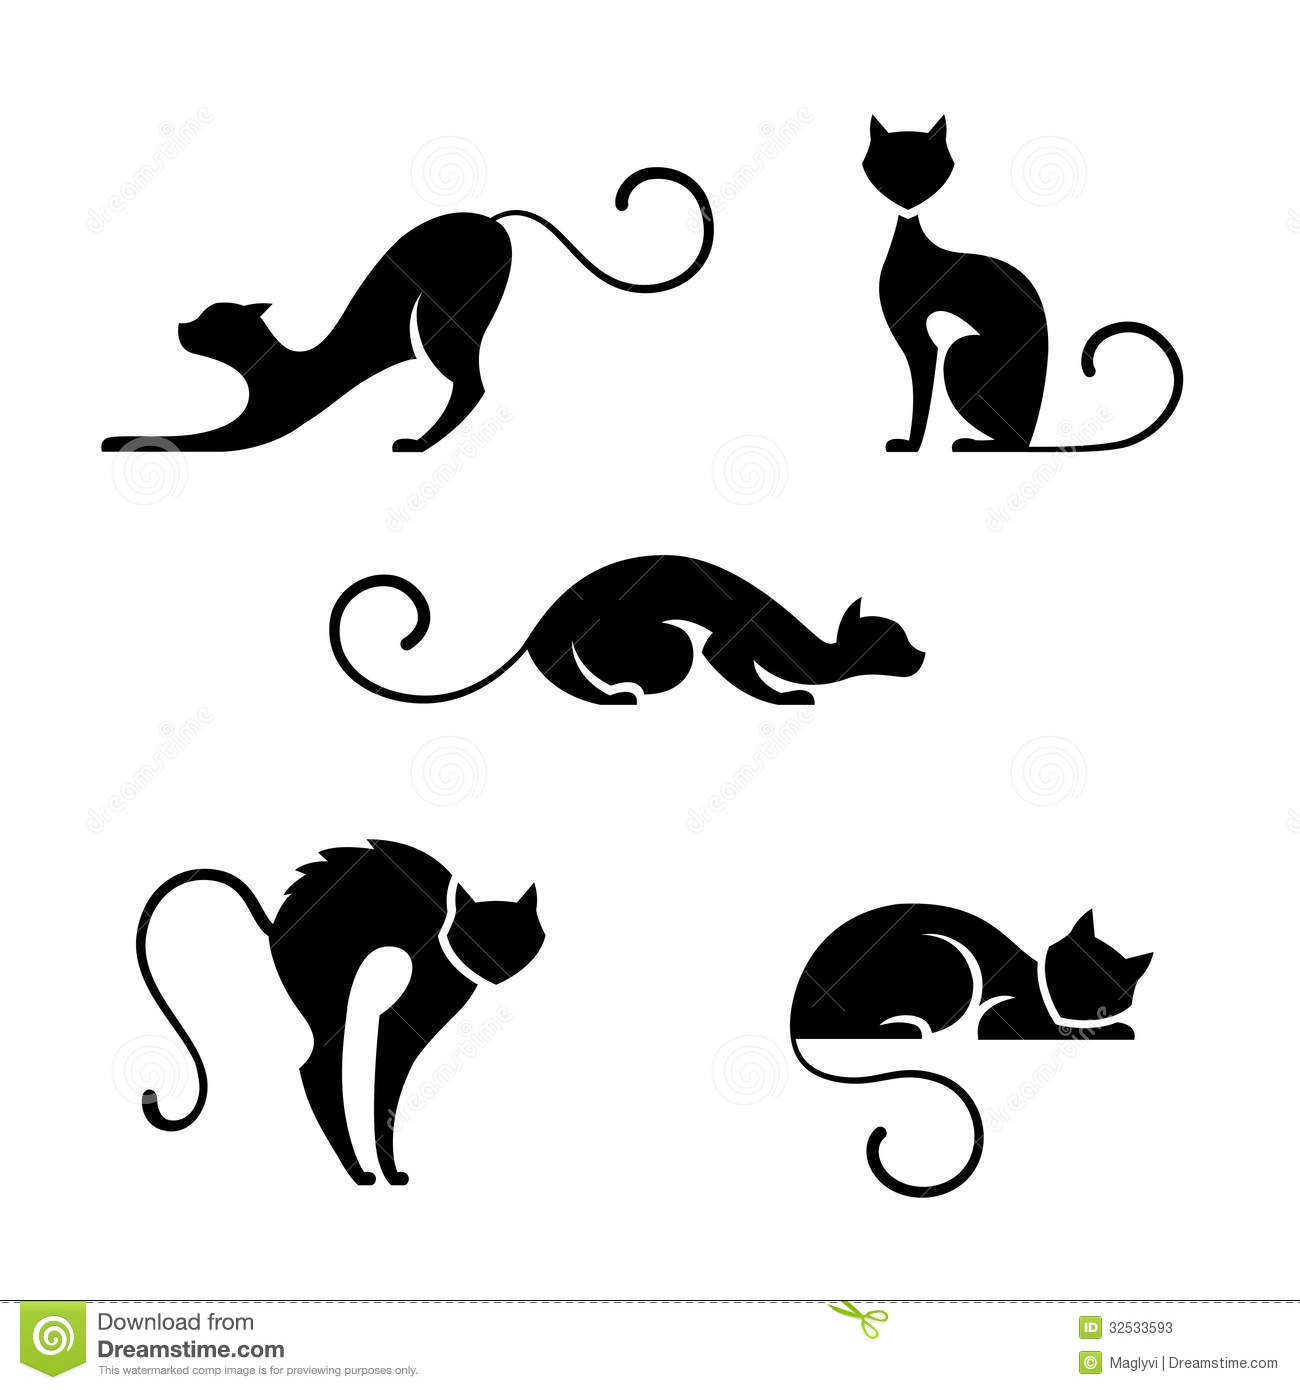 Cat symbols stock vector. Illustration of kitty, abstract ...